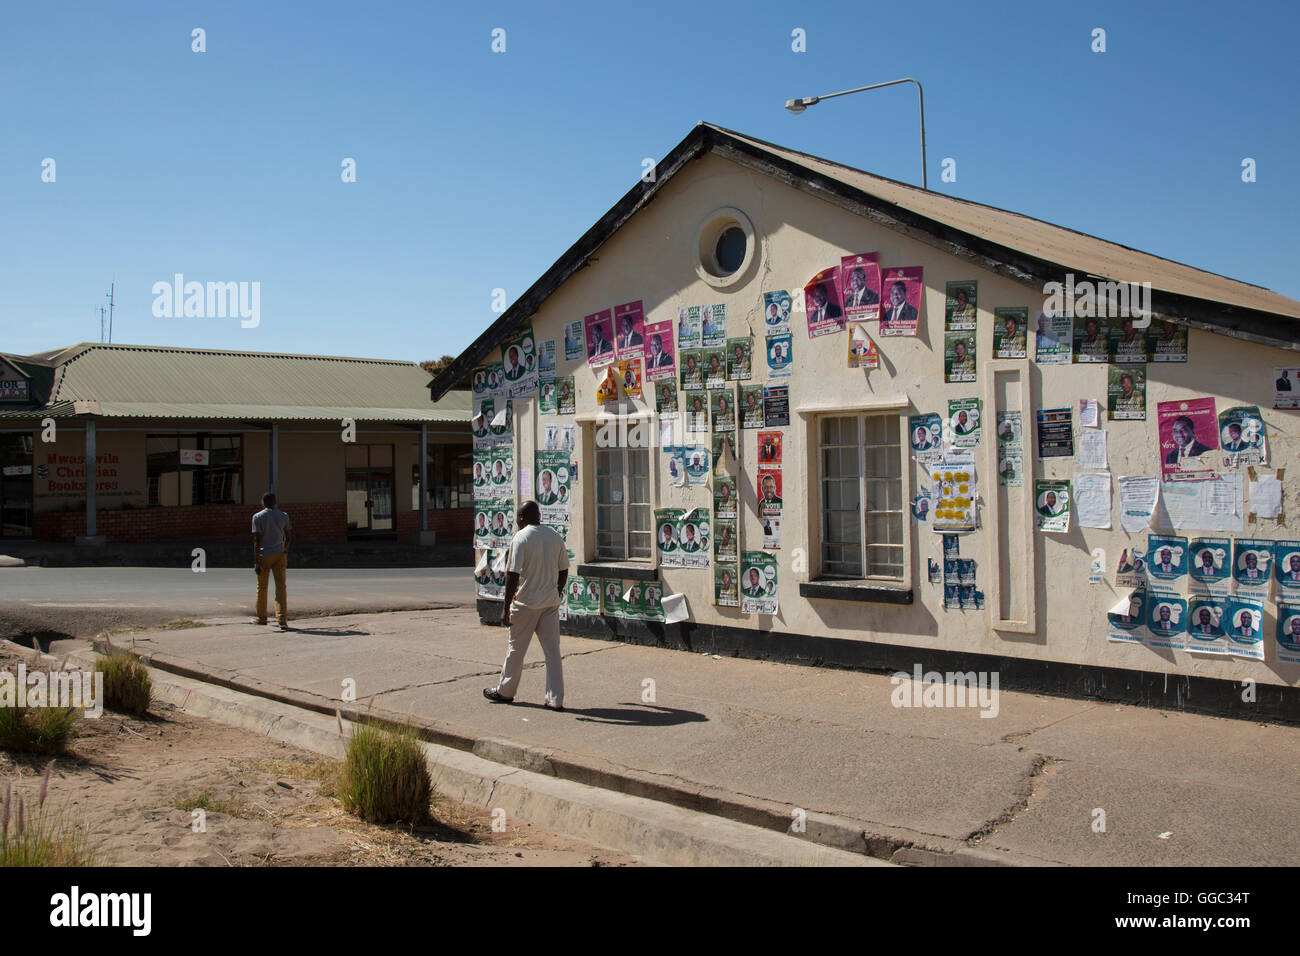 Zambia, Africa general election August 2016 street posters - Stock Image